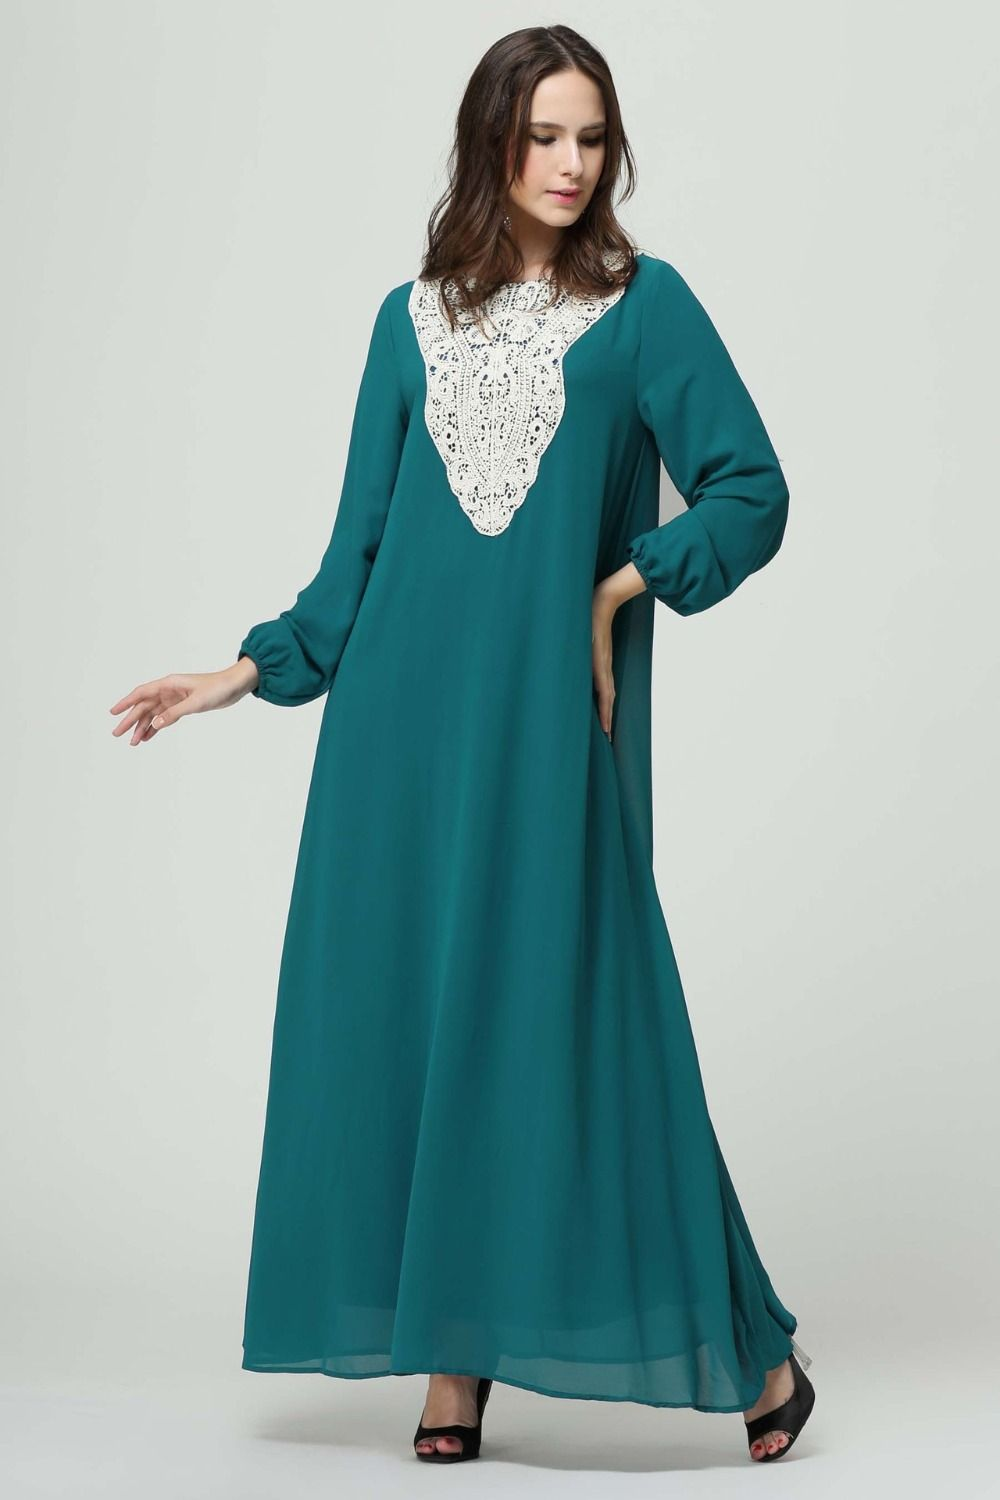 Women chiffon maxi dress kaftan jilbab islamic abaya muslim long